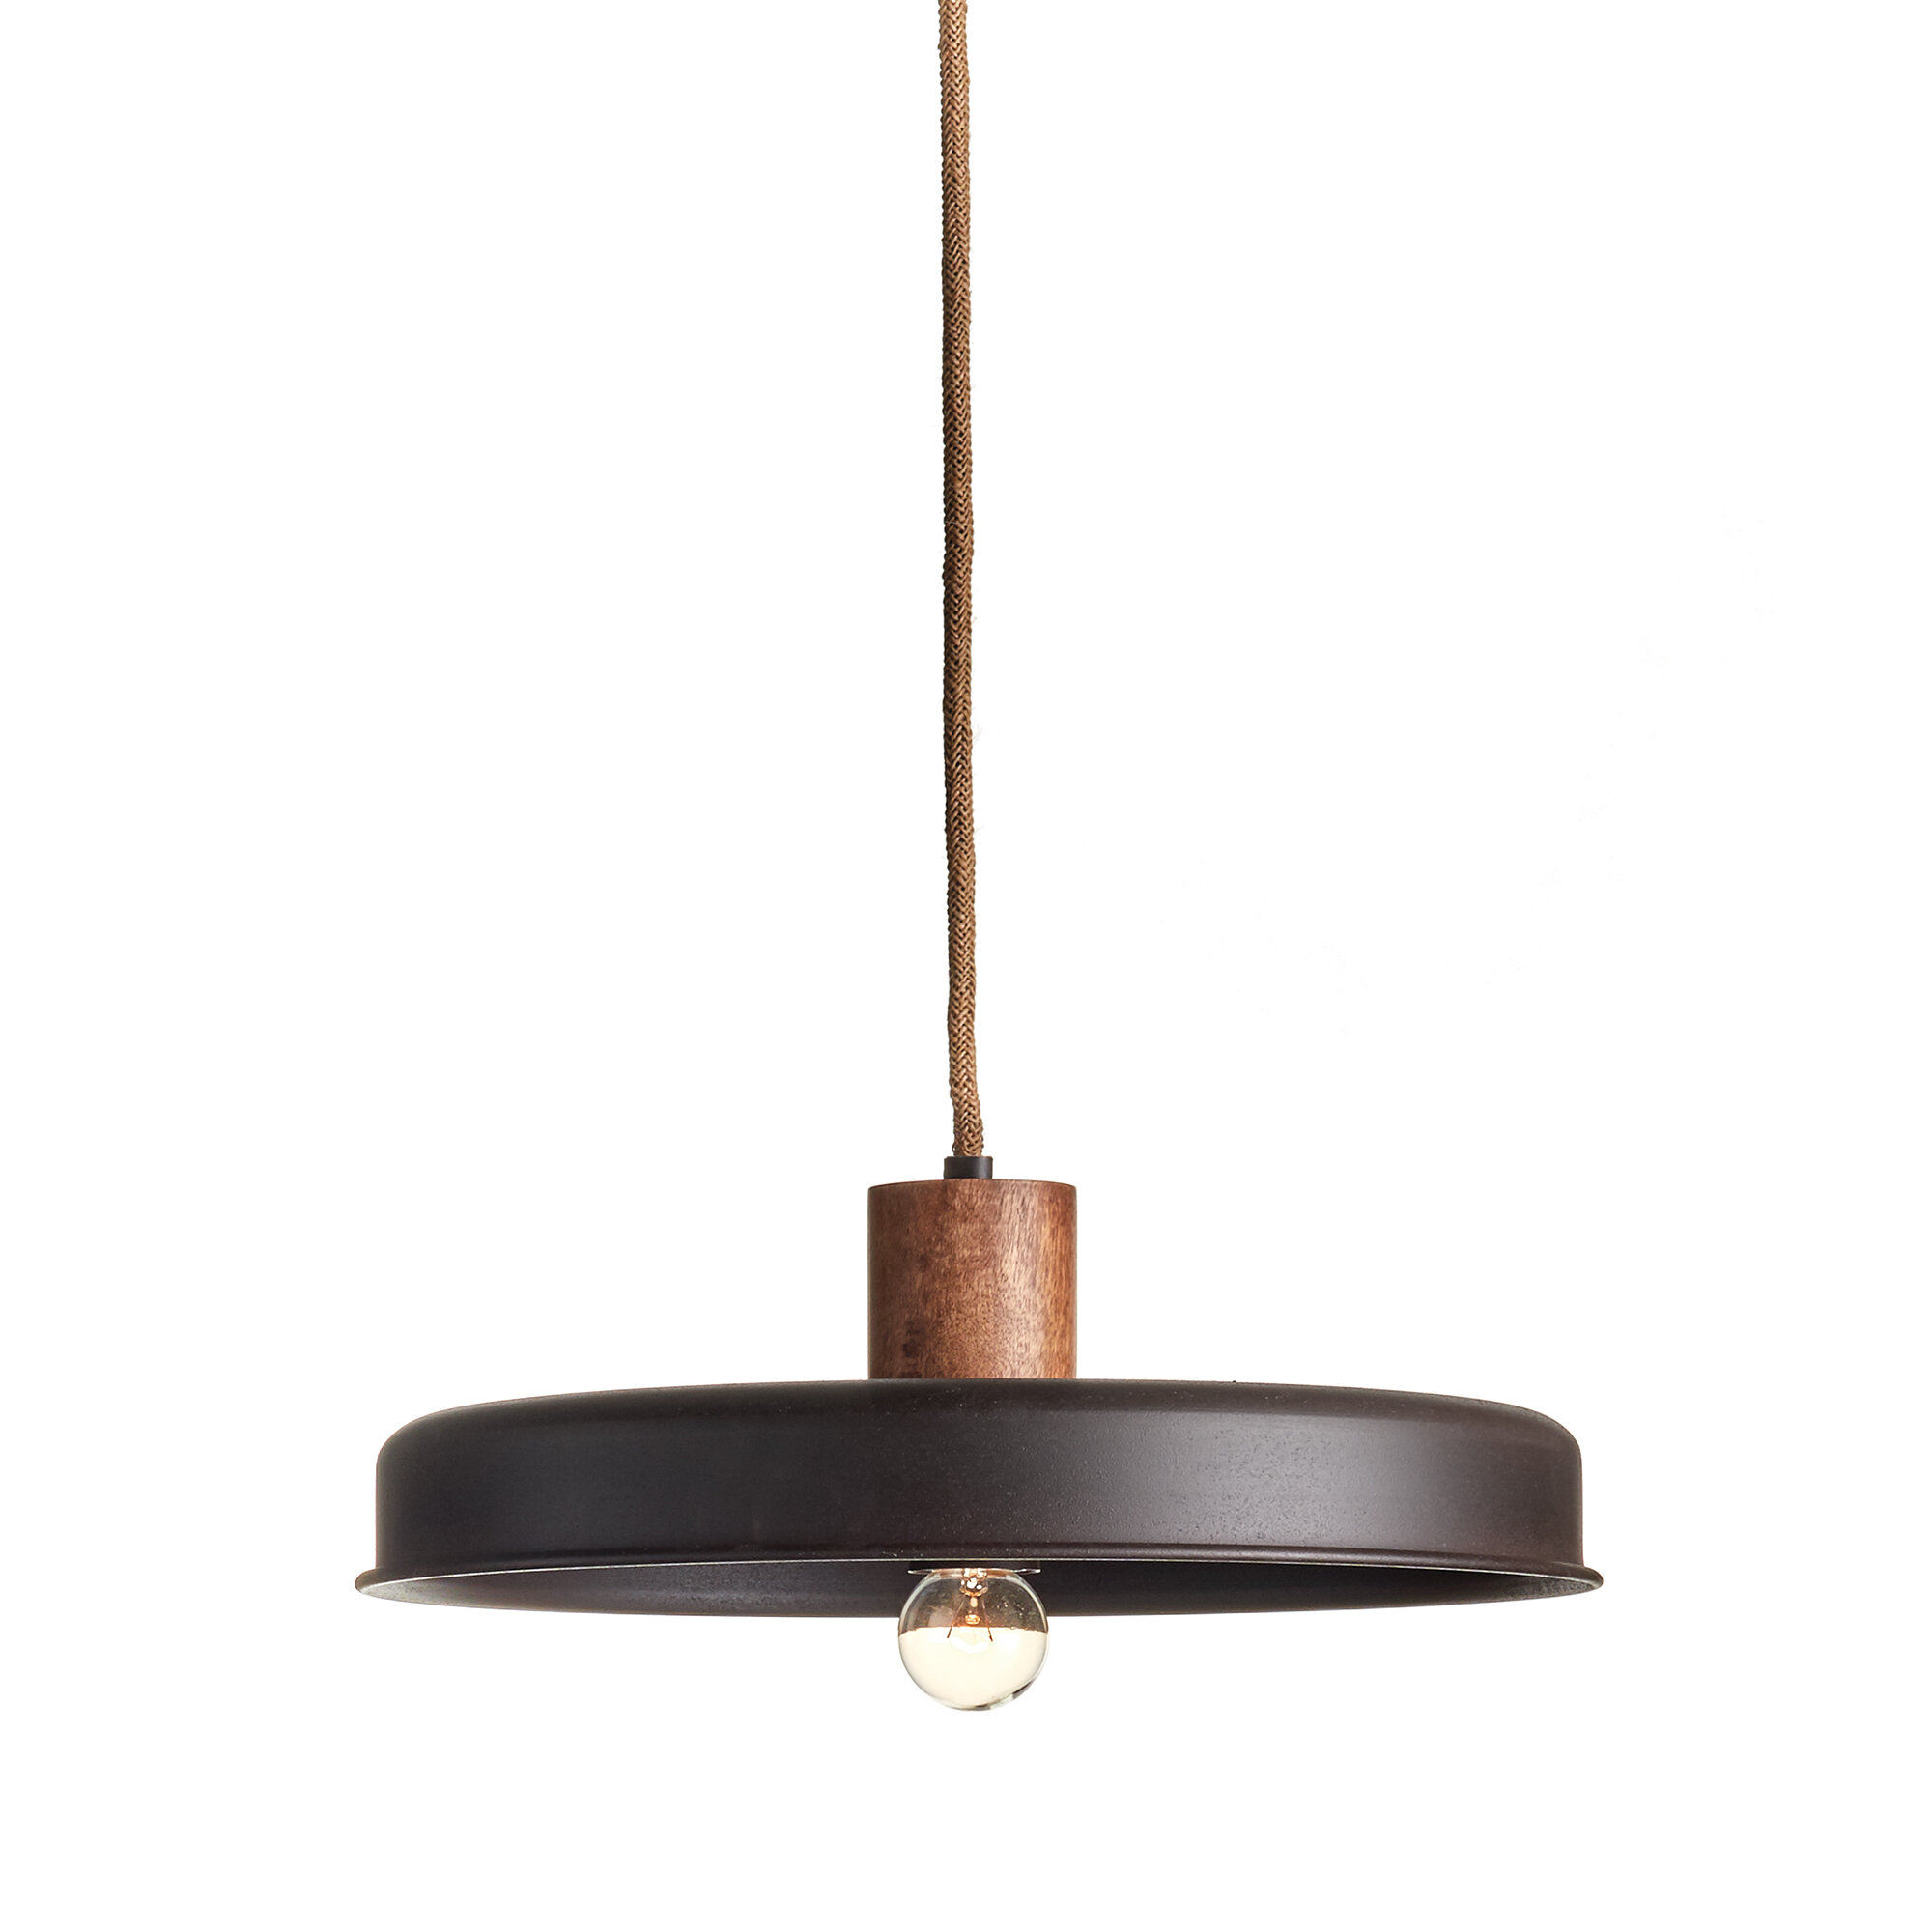 17 Stories Shamar 1 Light Single Dome Pendant With Rope Accents Wayfair